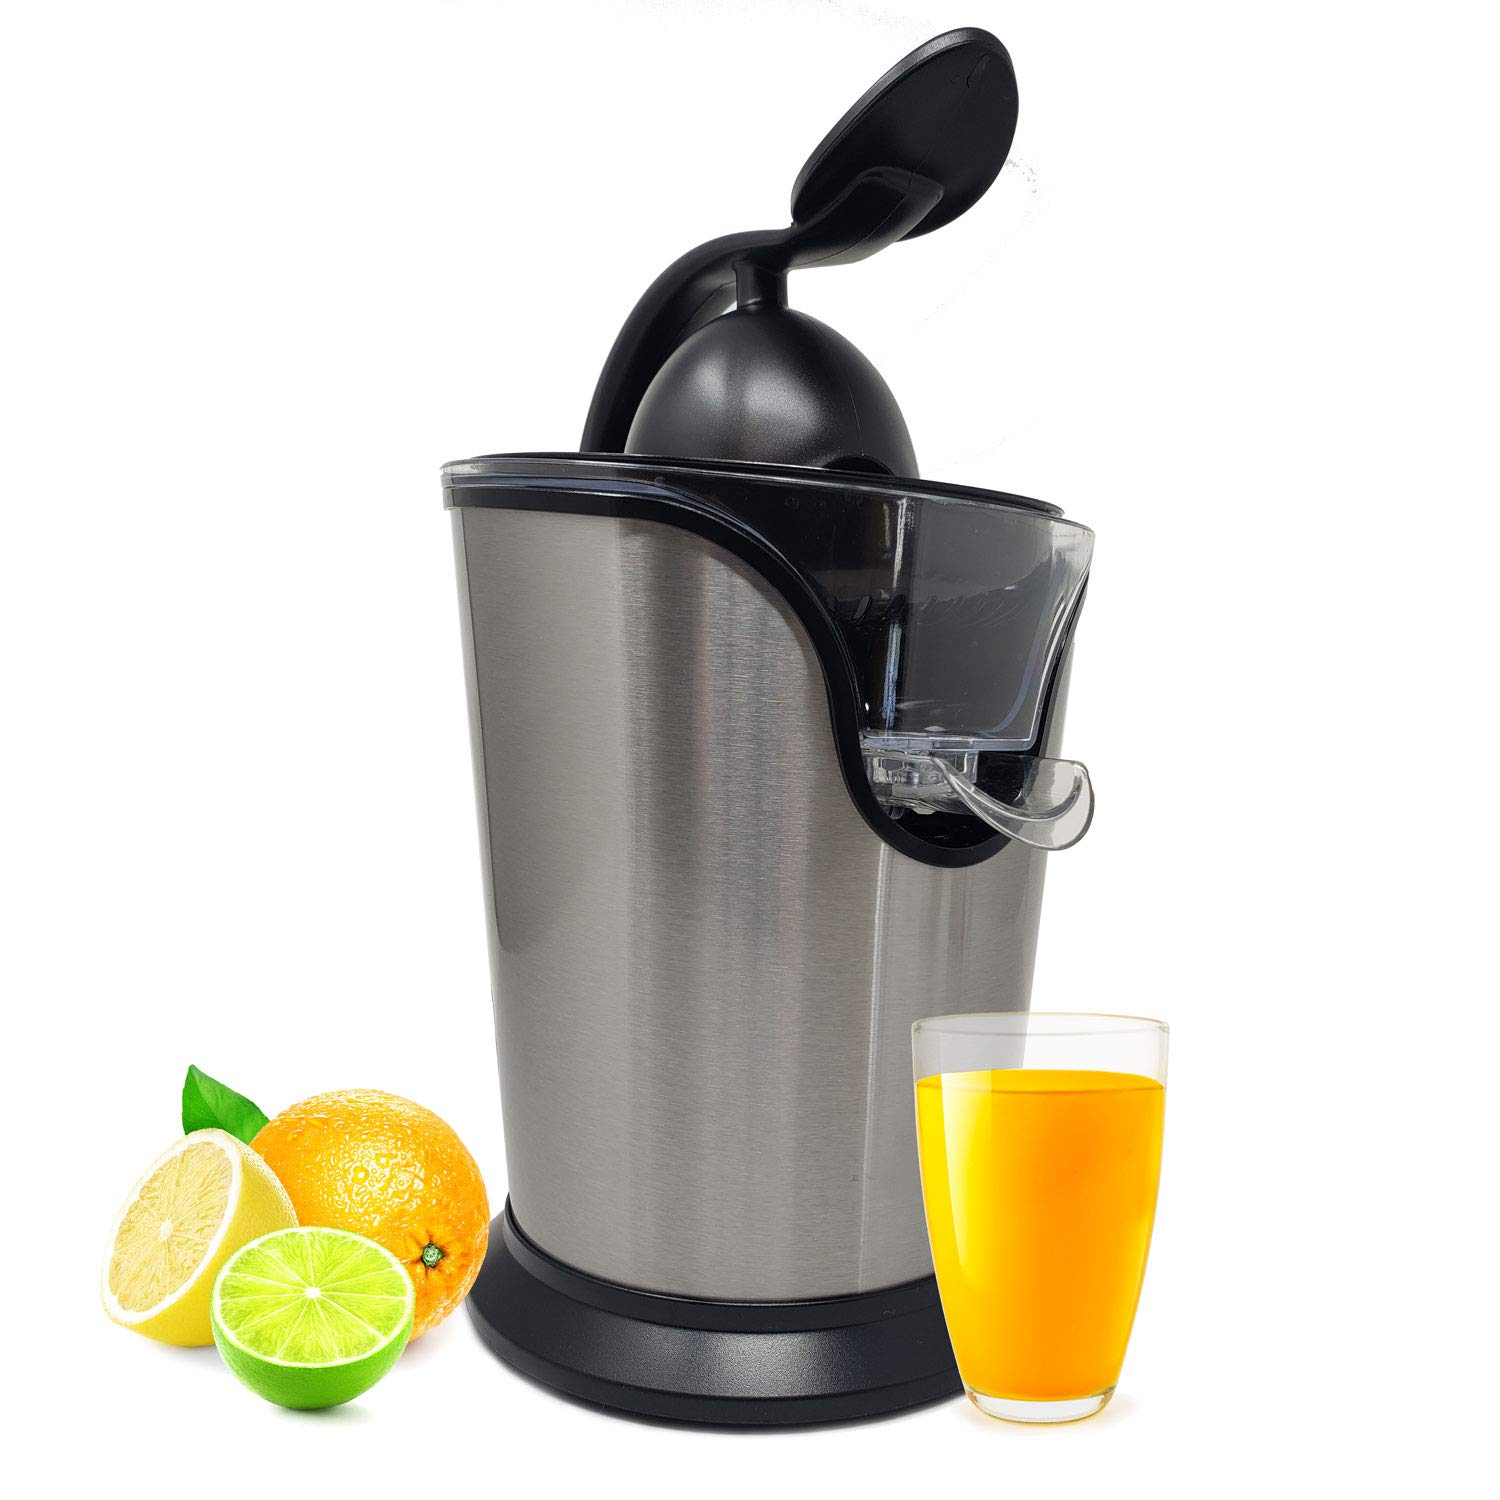 Electric Citrus Juicer Press Squeezer Stainless Steel - Ultra Quiet & Super Duty 85 Watt Motor Anti Slip & No Drip For Orange & Lemon